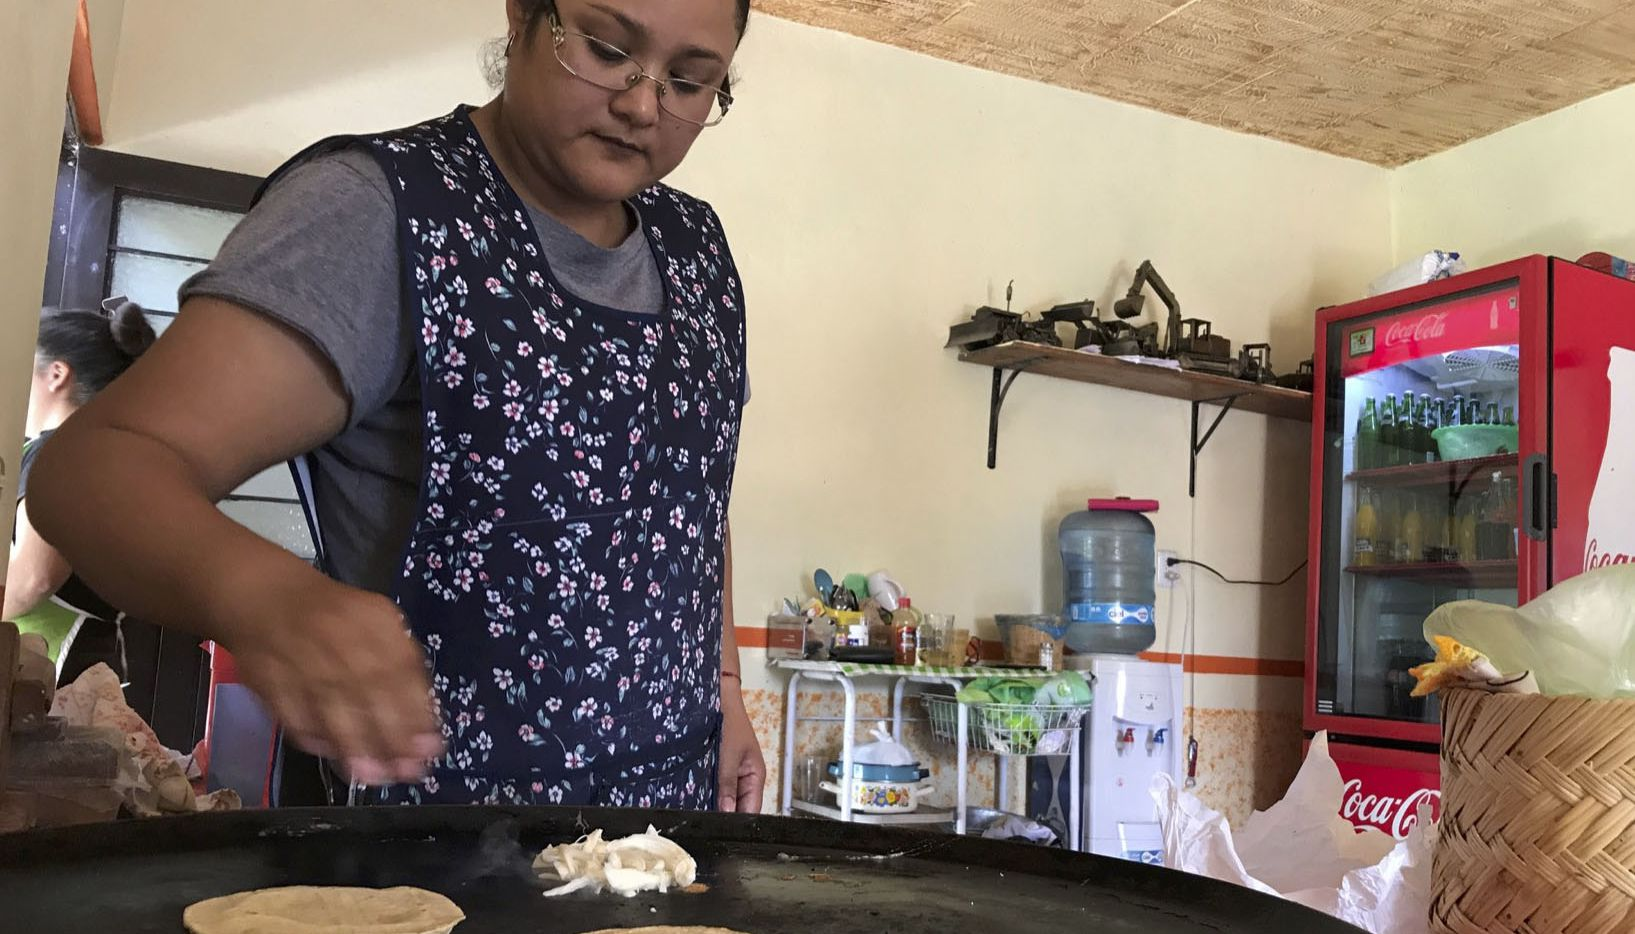 Yanet Lopez prepares quesadillas in her Guanajuato home, site of the upcoming Toyota plant that's under construction.